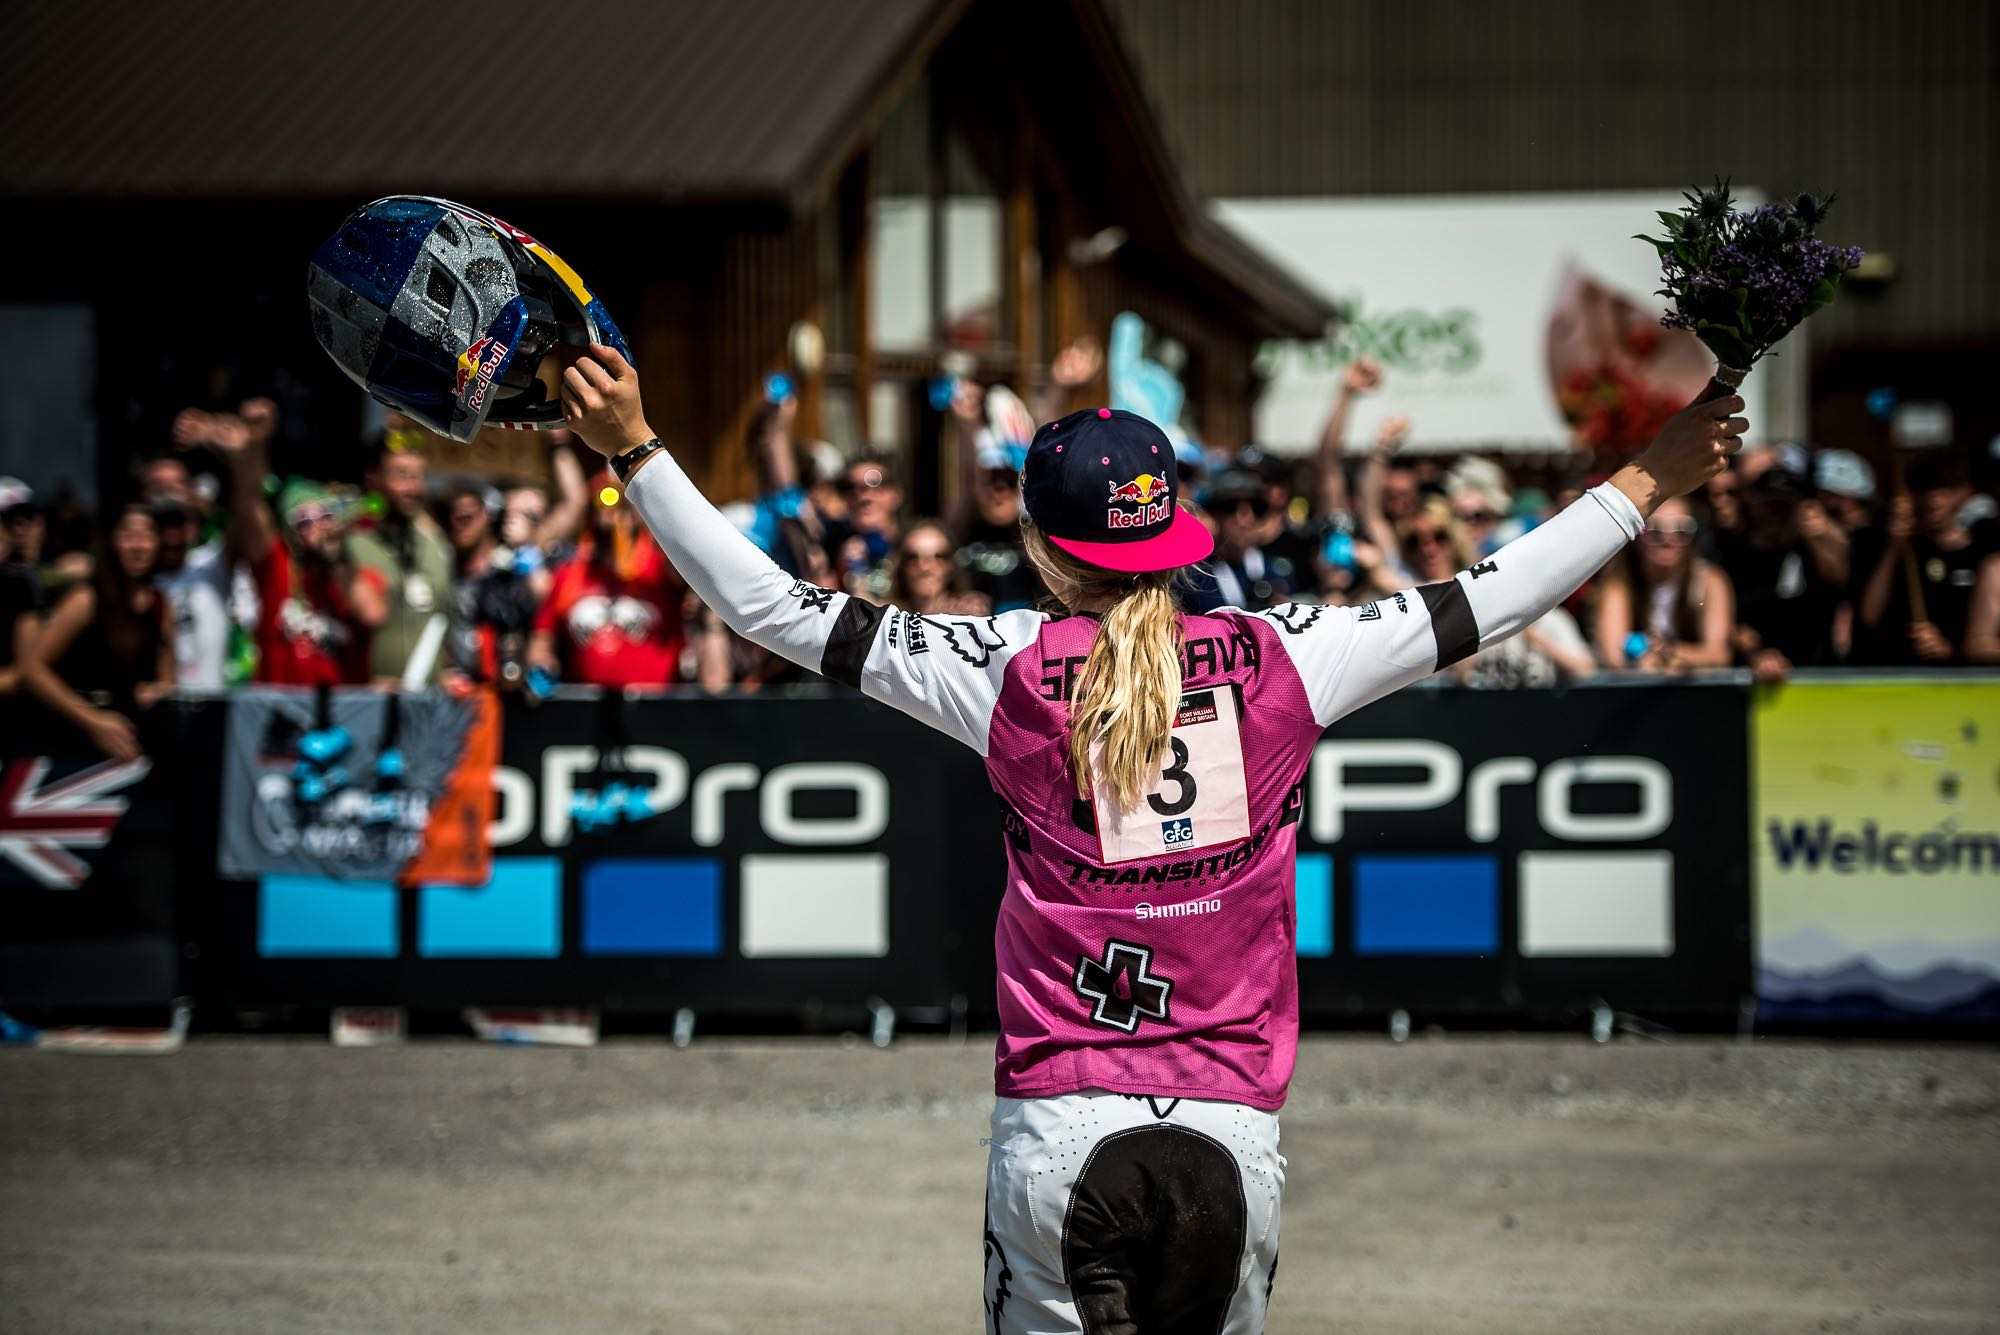 Tahnee Seagrave wins the Women's Downhill MTB world cup in Fort William Scotland